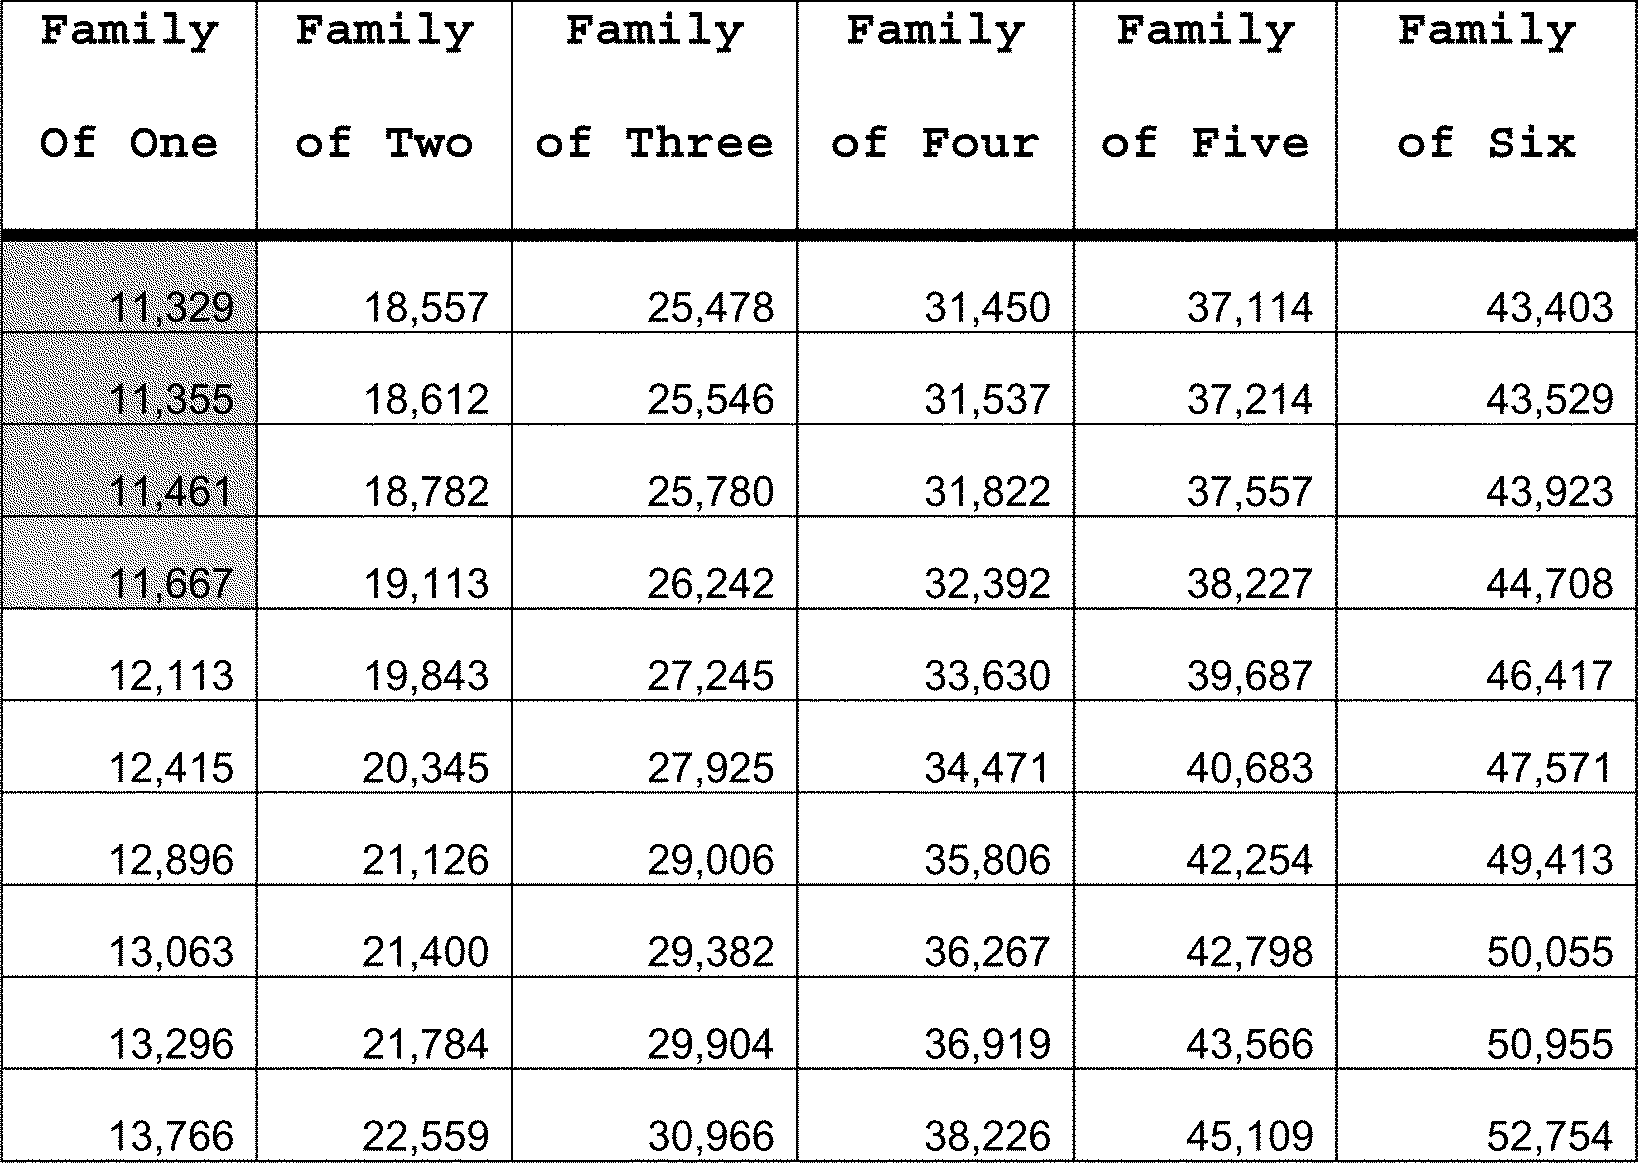 Nj familycare application nj - Table 4 70 Percent Of Updated 2015 Lower Living Standard Income Level Llsil By Family Size